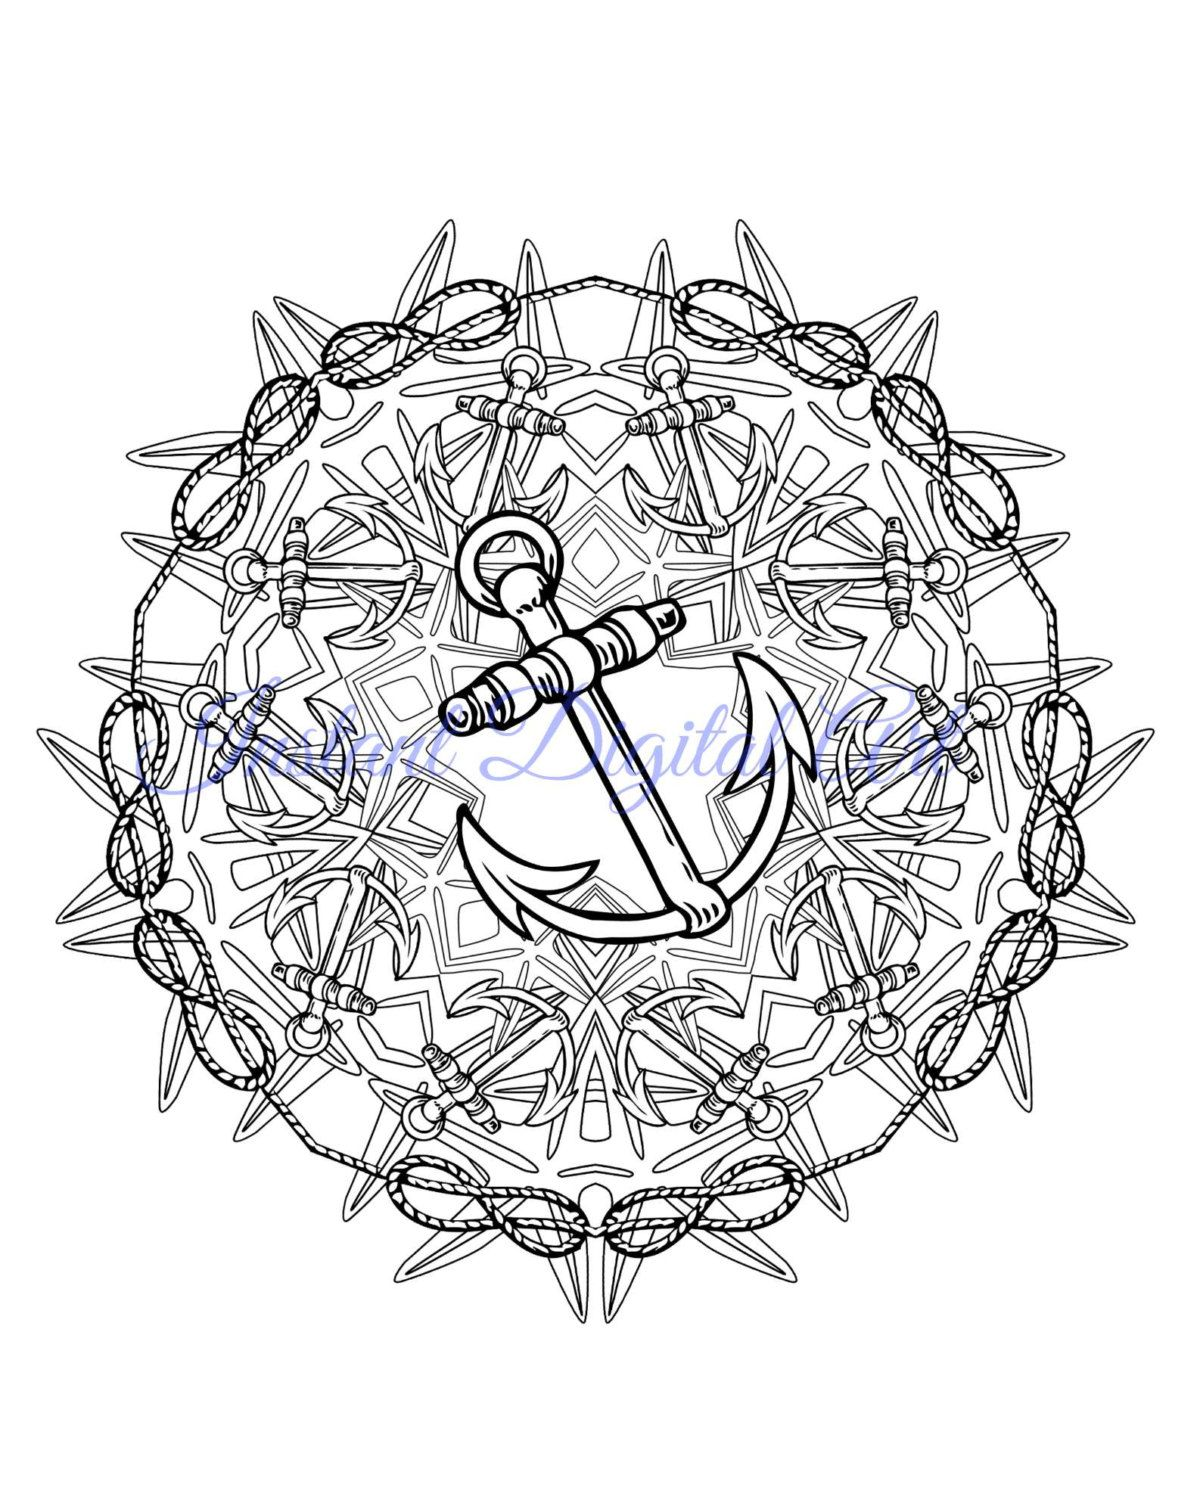 coloring page mermaid colouring mandala advanced mandala